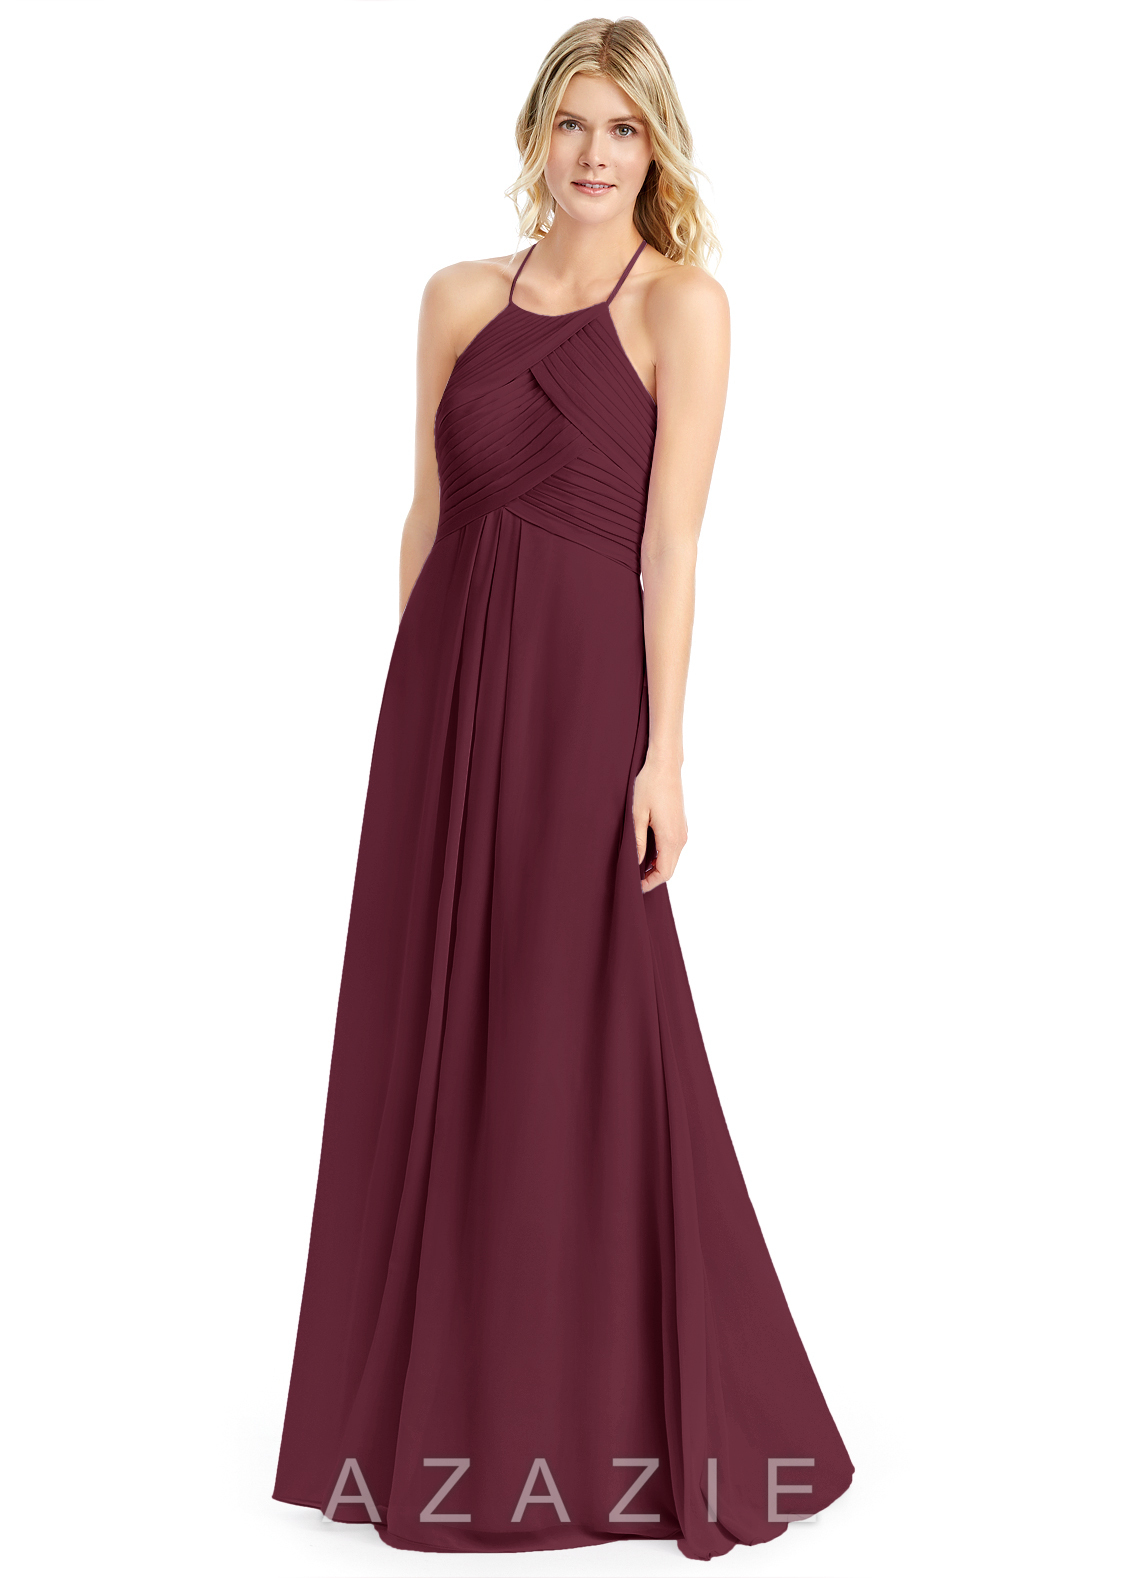 b8cef3620c6 Azazie Ginger Evening Dress - Cabernet